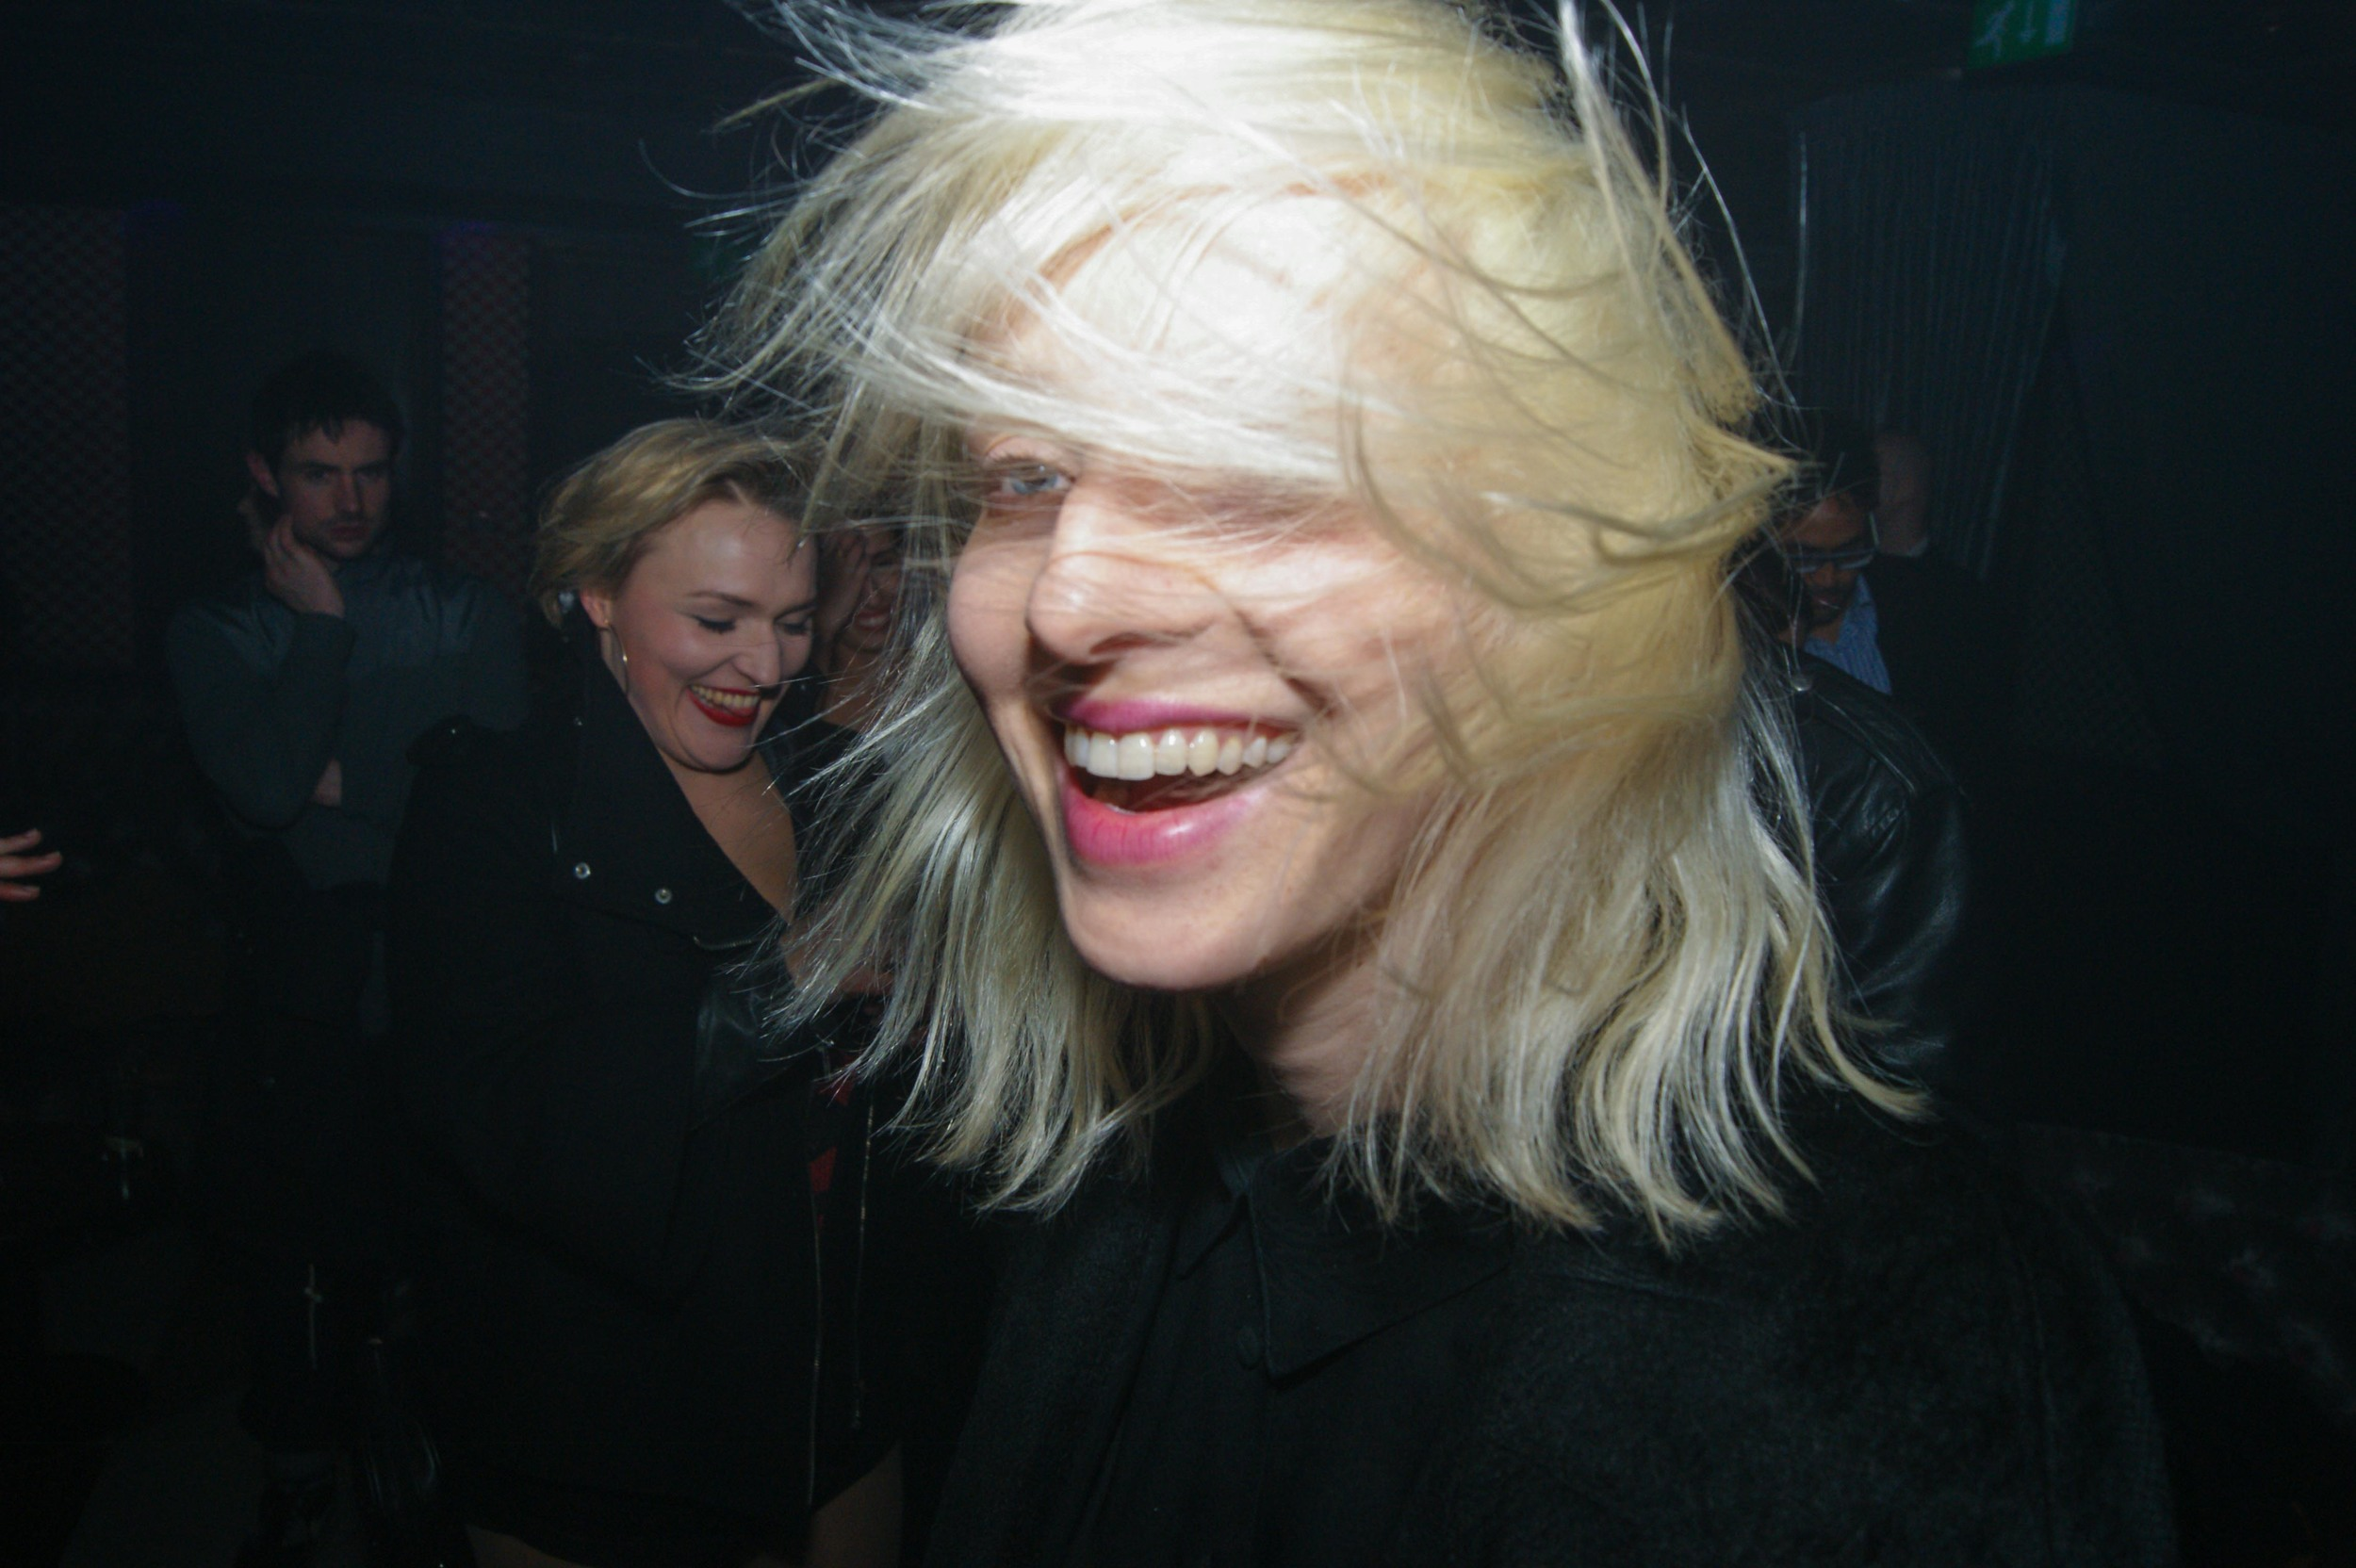 Bleach Blonde Hair, Big Smile